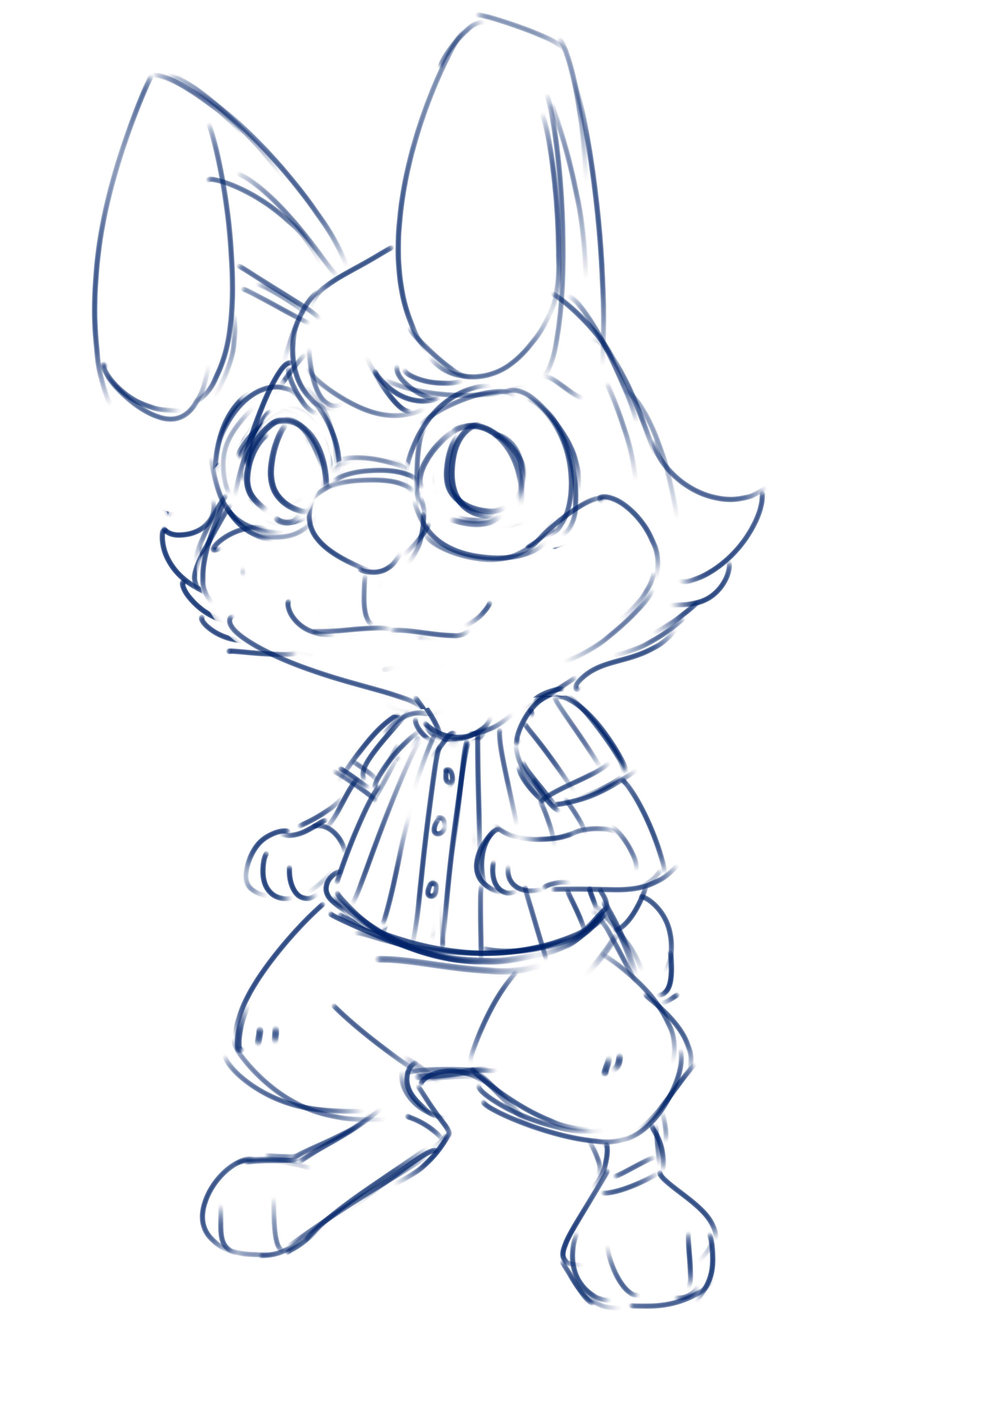 Righty Rabbit ORIGINAL Sketch.jpg